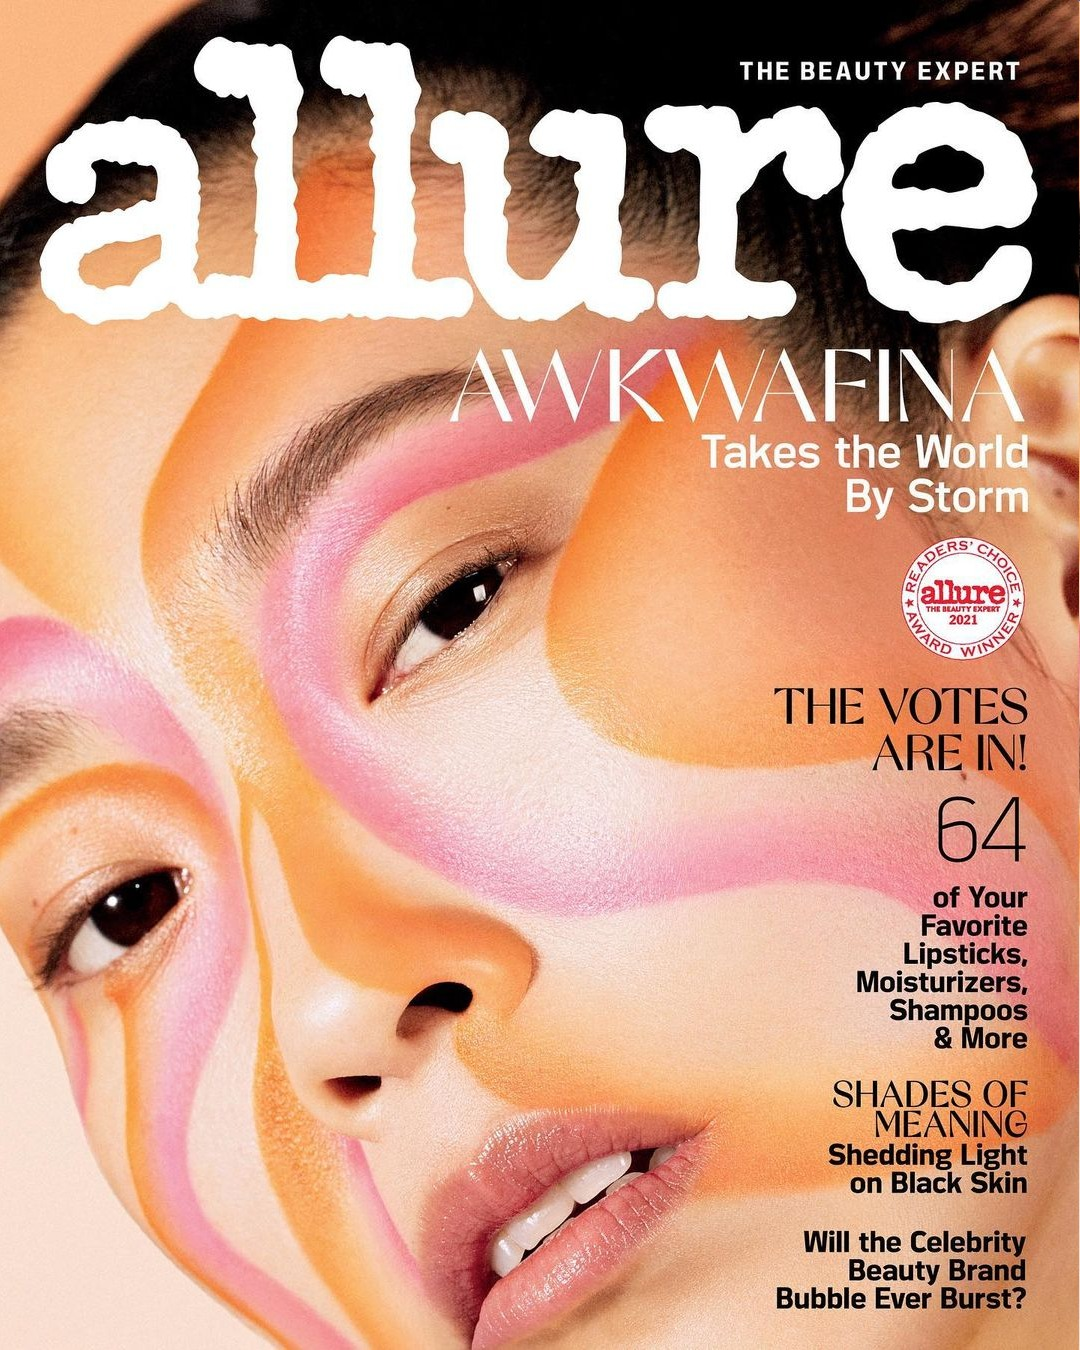 Awkwafina talks about being a thrifty, disorganized, empath extrovert with Allure